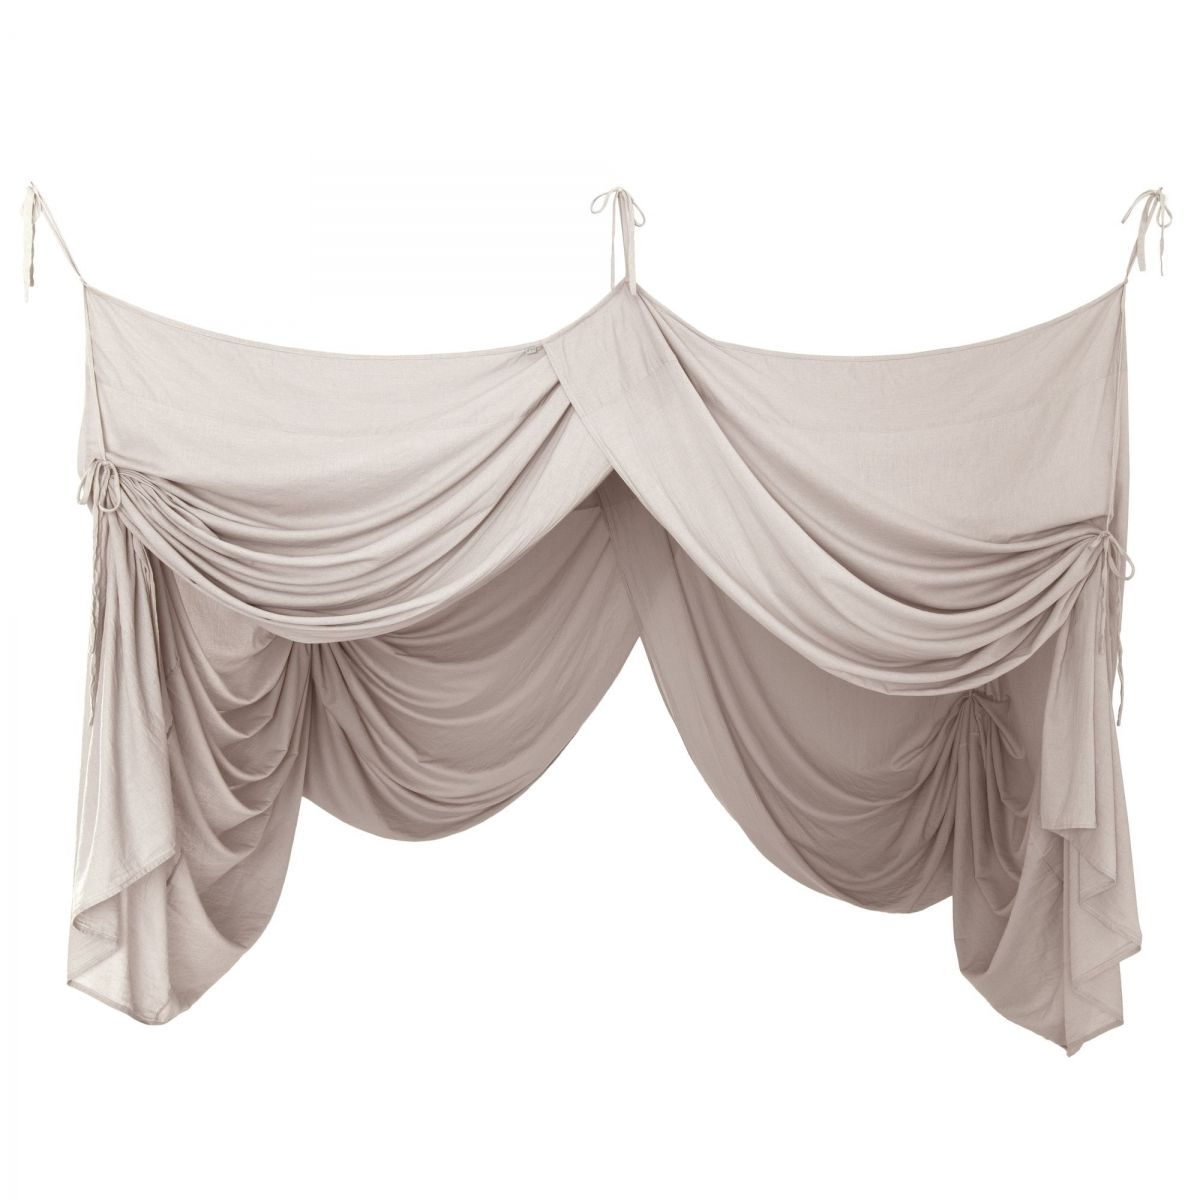 Numero 74 Bed Canopy Drape powder